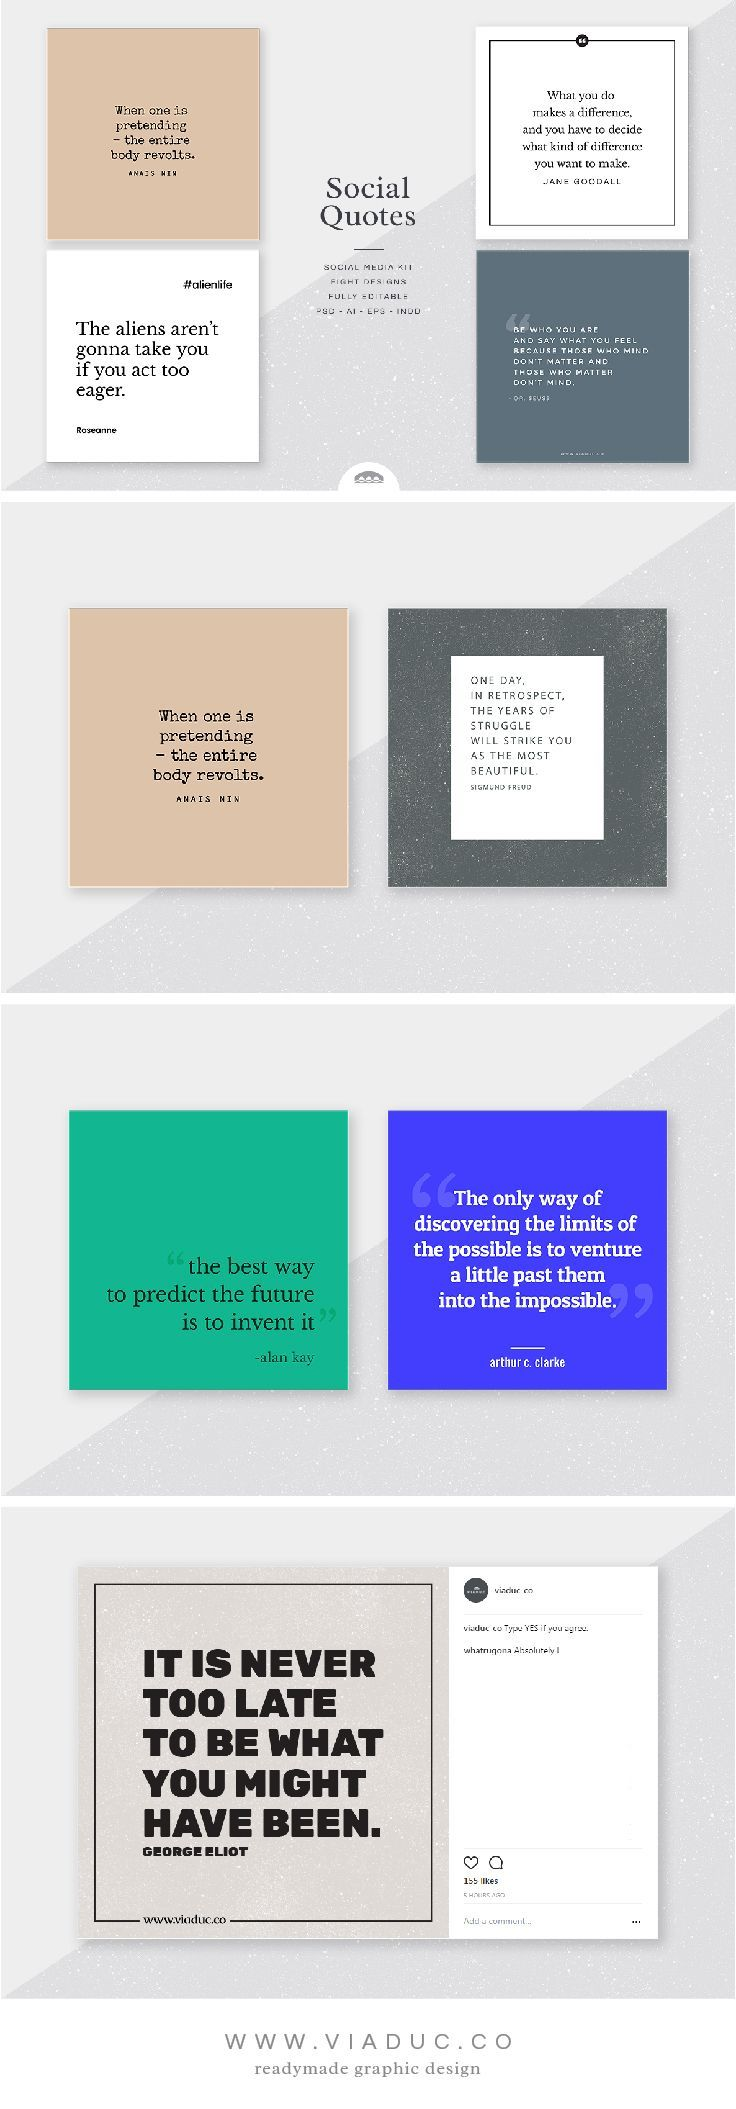 The Quotes Kit is a selection of typographic design templates in a variety of elegant, stylish and contemporary font styles. Use these designs to express yourideas, promote your business, or make an impression on social media � whether you are a blogger